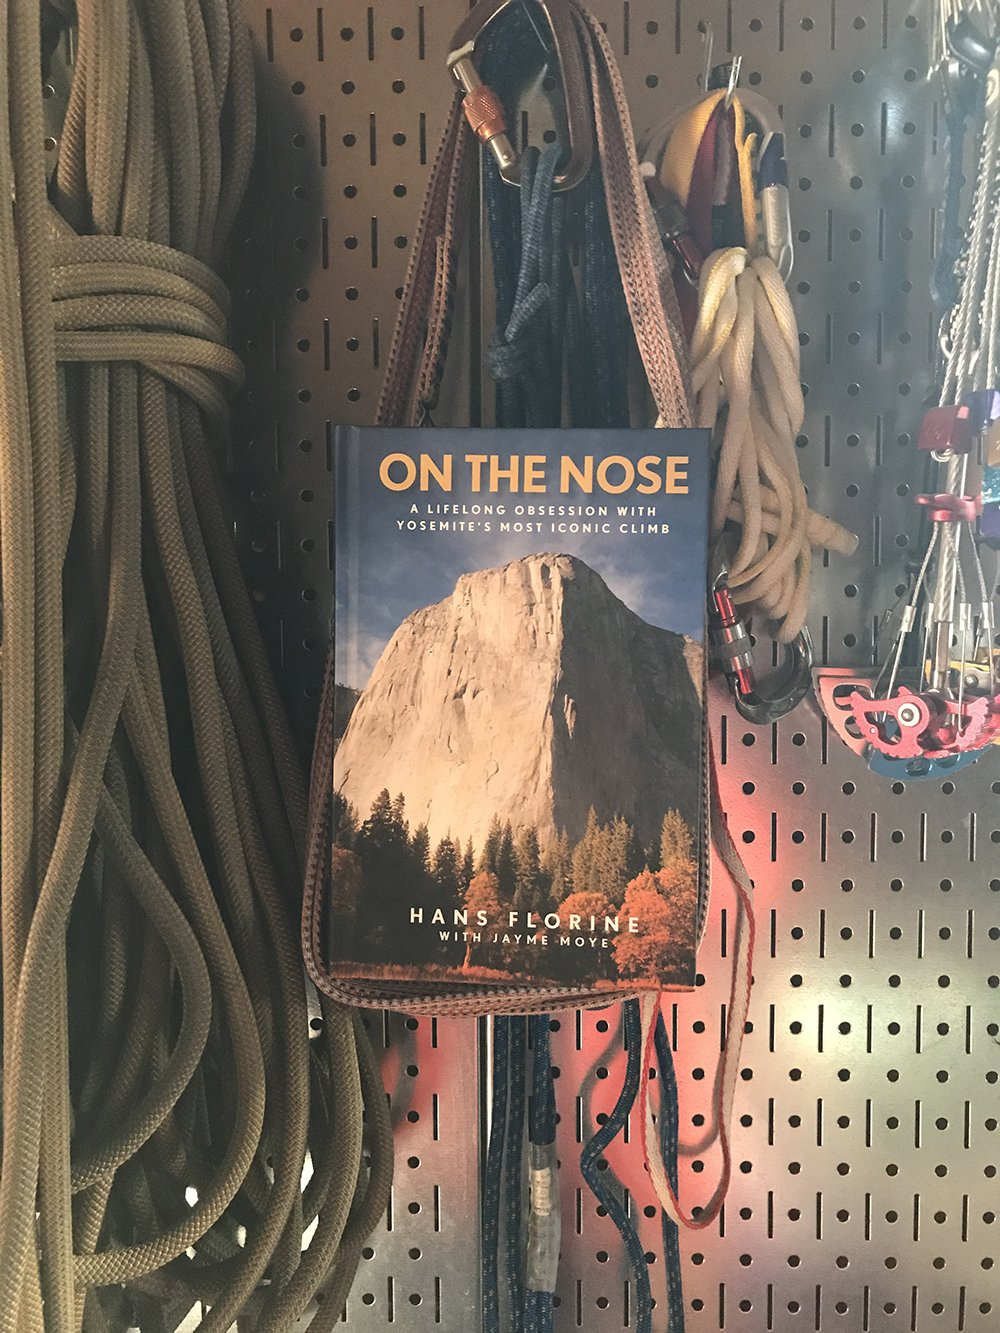 On the Nose Climbing Book Review